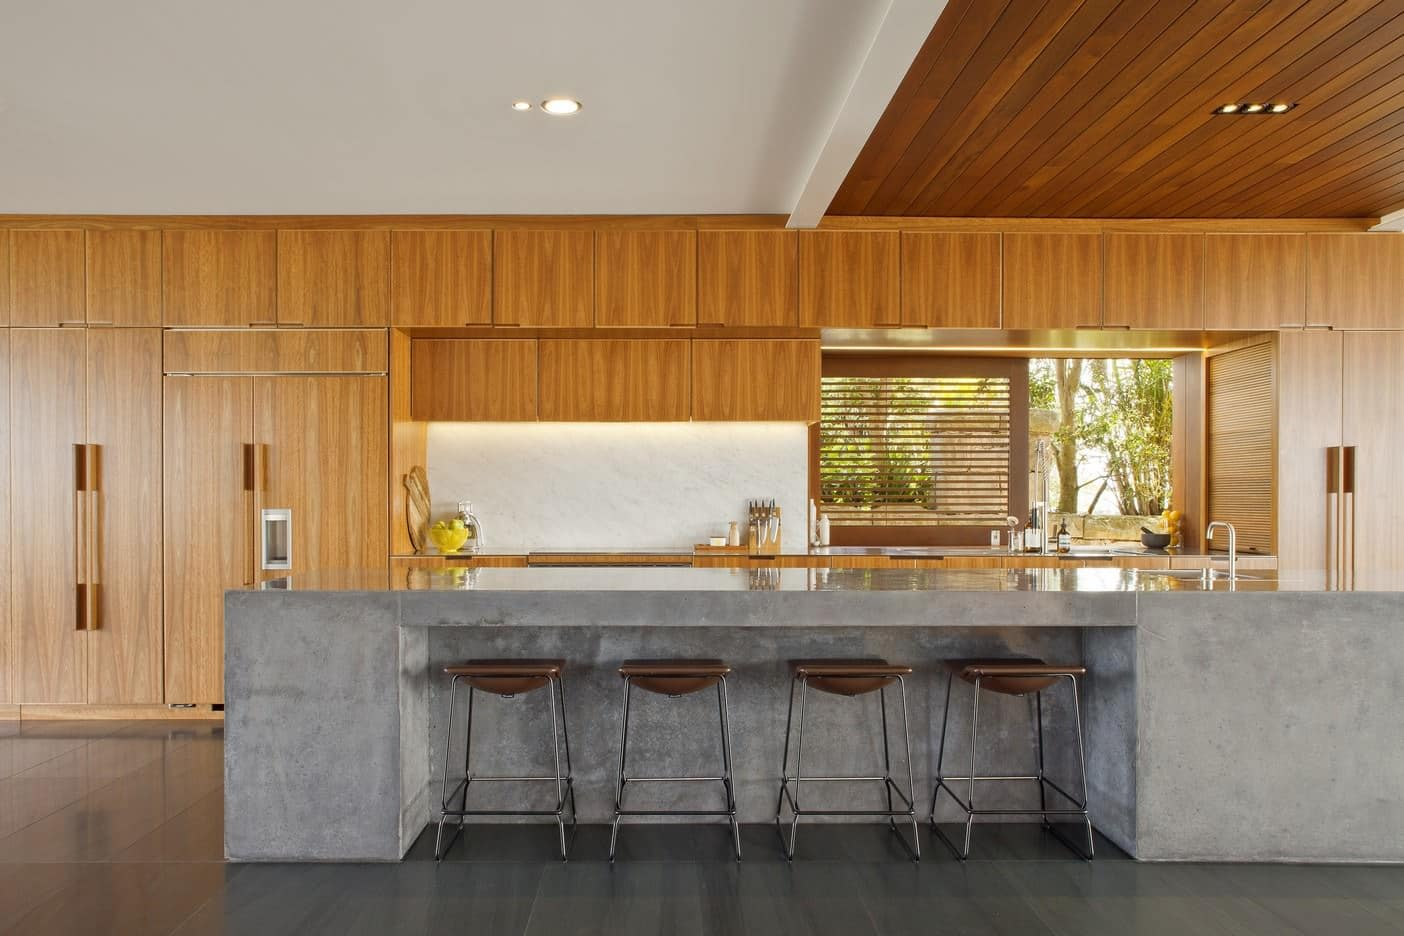 At Home: The Concrete Cause